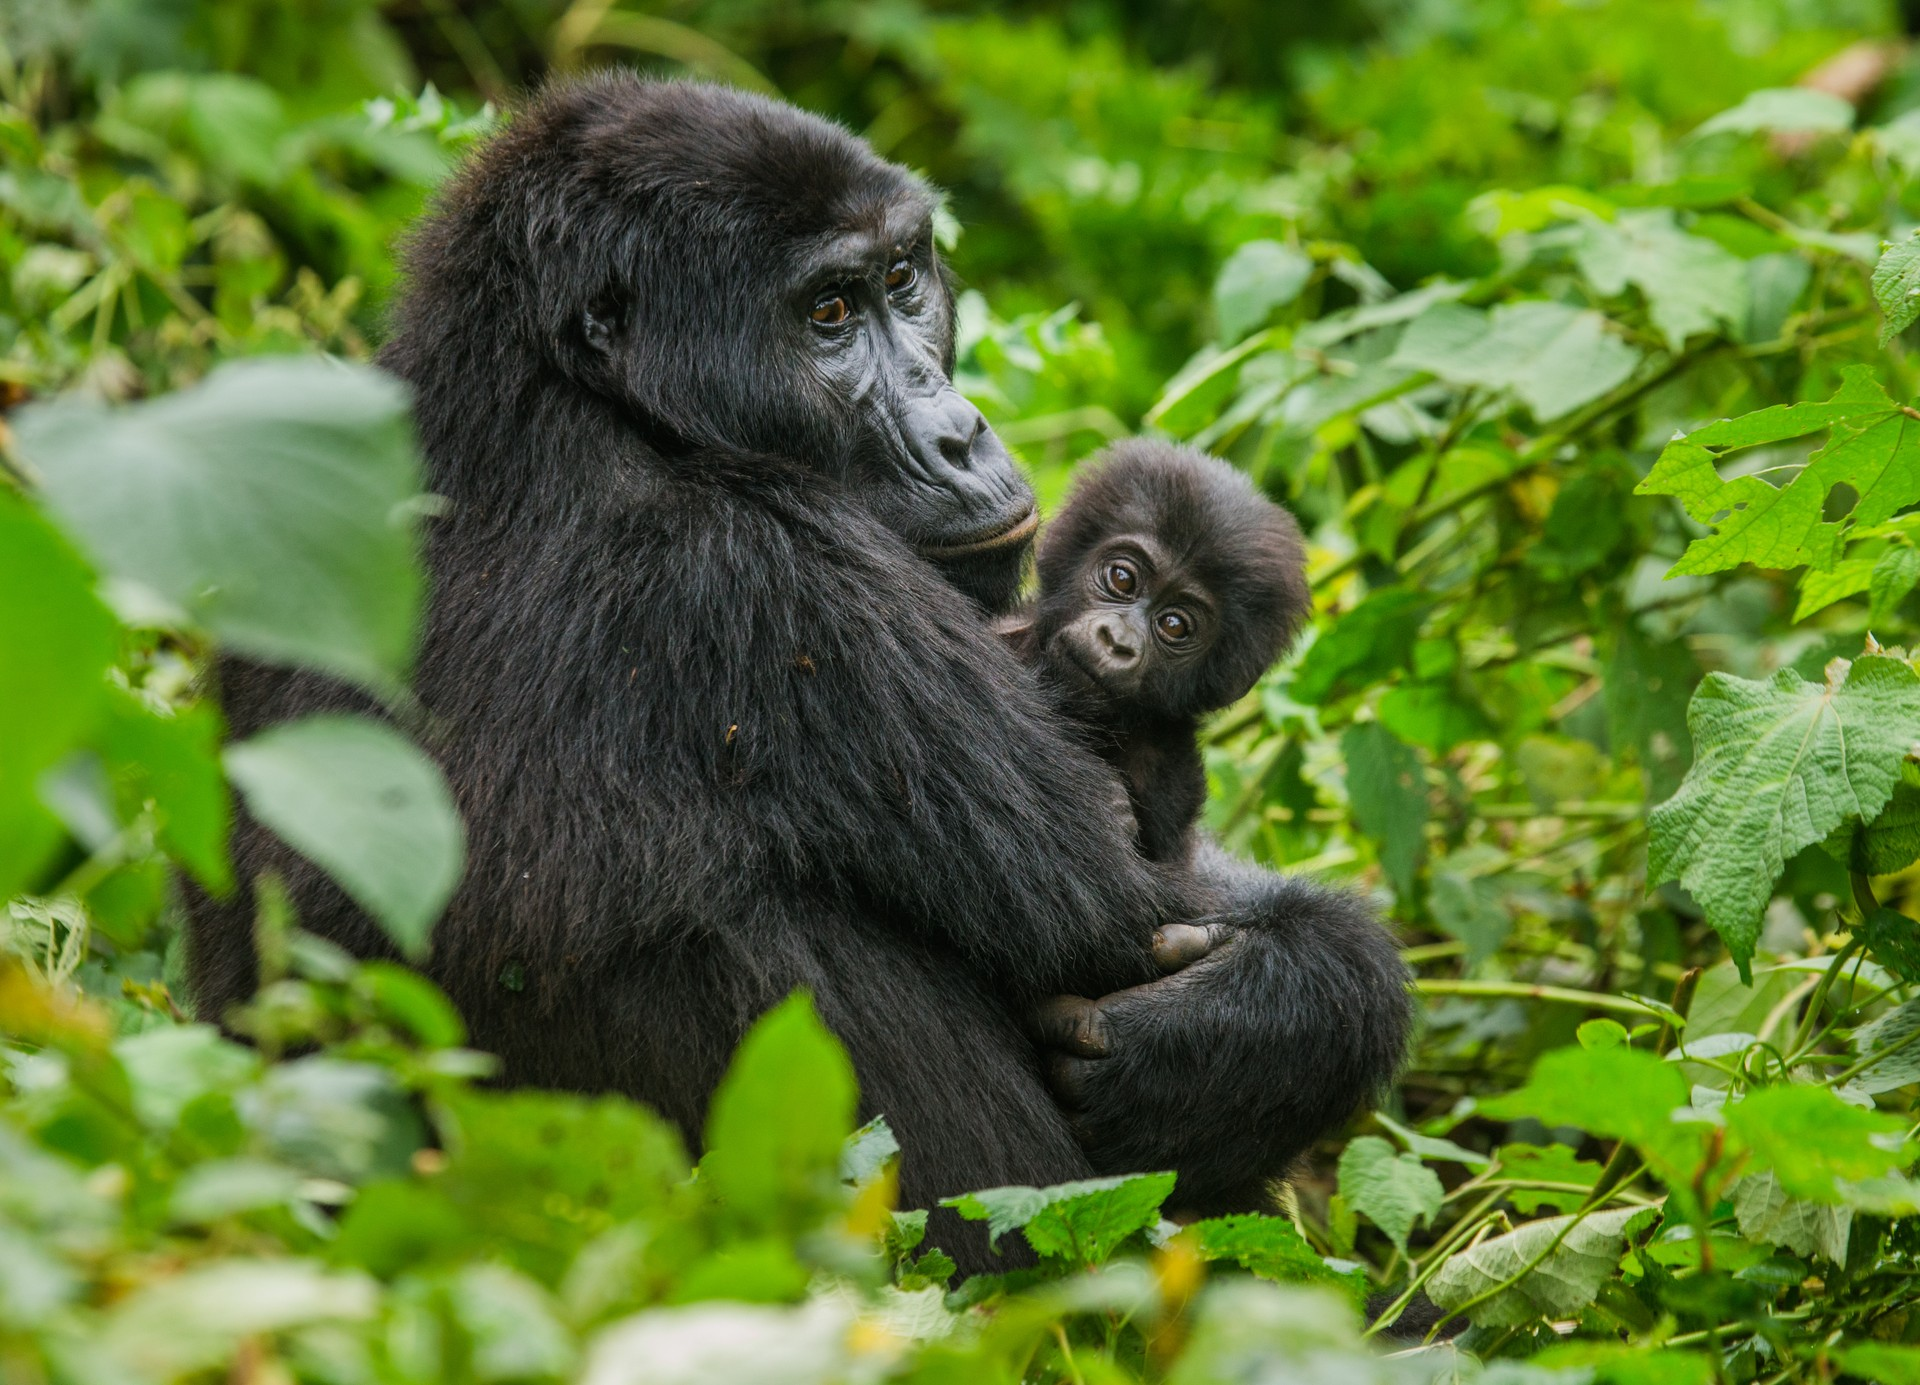 Gorilla mother and baby in Uganda